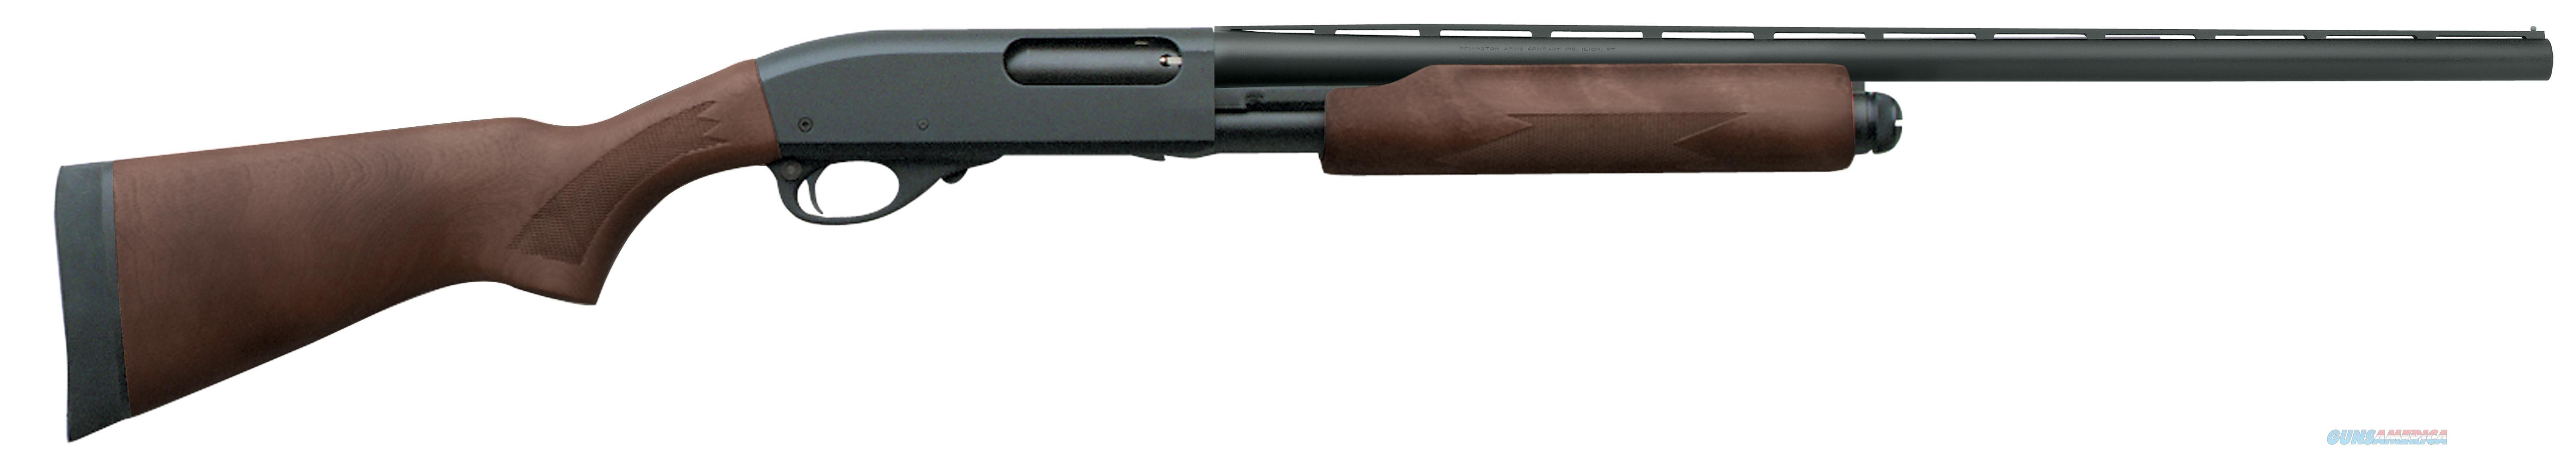 REMINGTON 870 EXP 20/26 25582  Guns > Shotguns > Remington Shotguns  > Pump